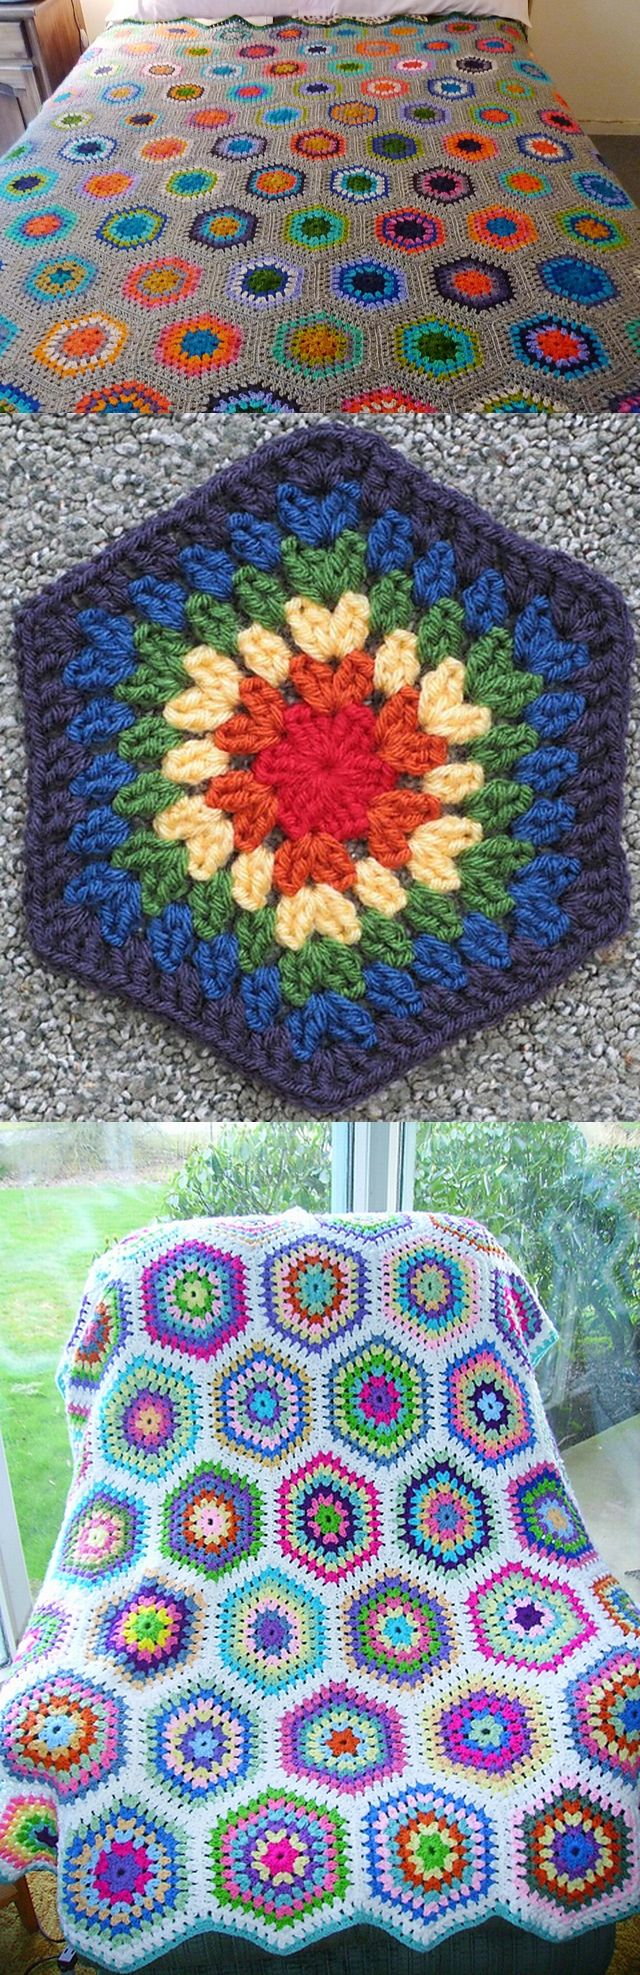 Ruby hexagon blanket free pattern from nova seals check ruby hexagon blanket free pattern from nova seals check ravelry bankloansurffo Image collections